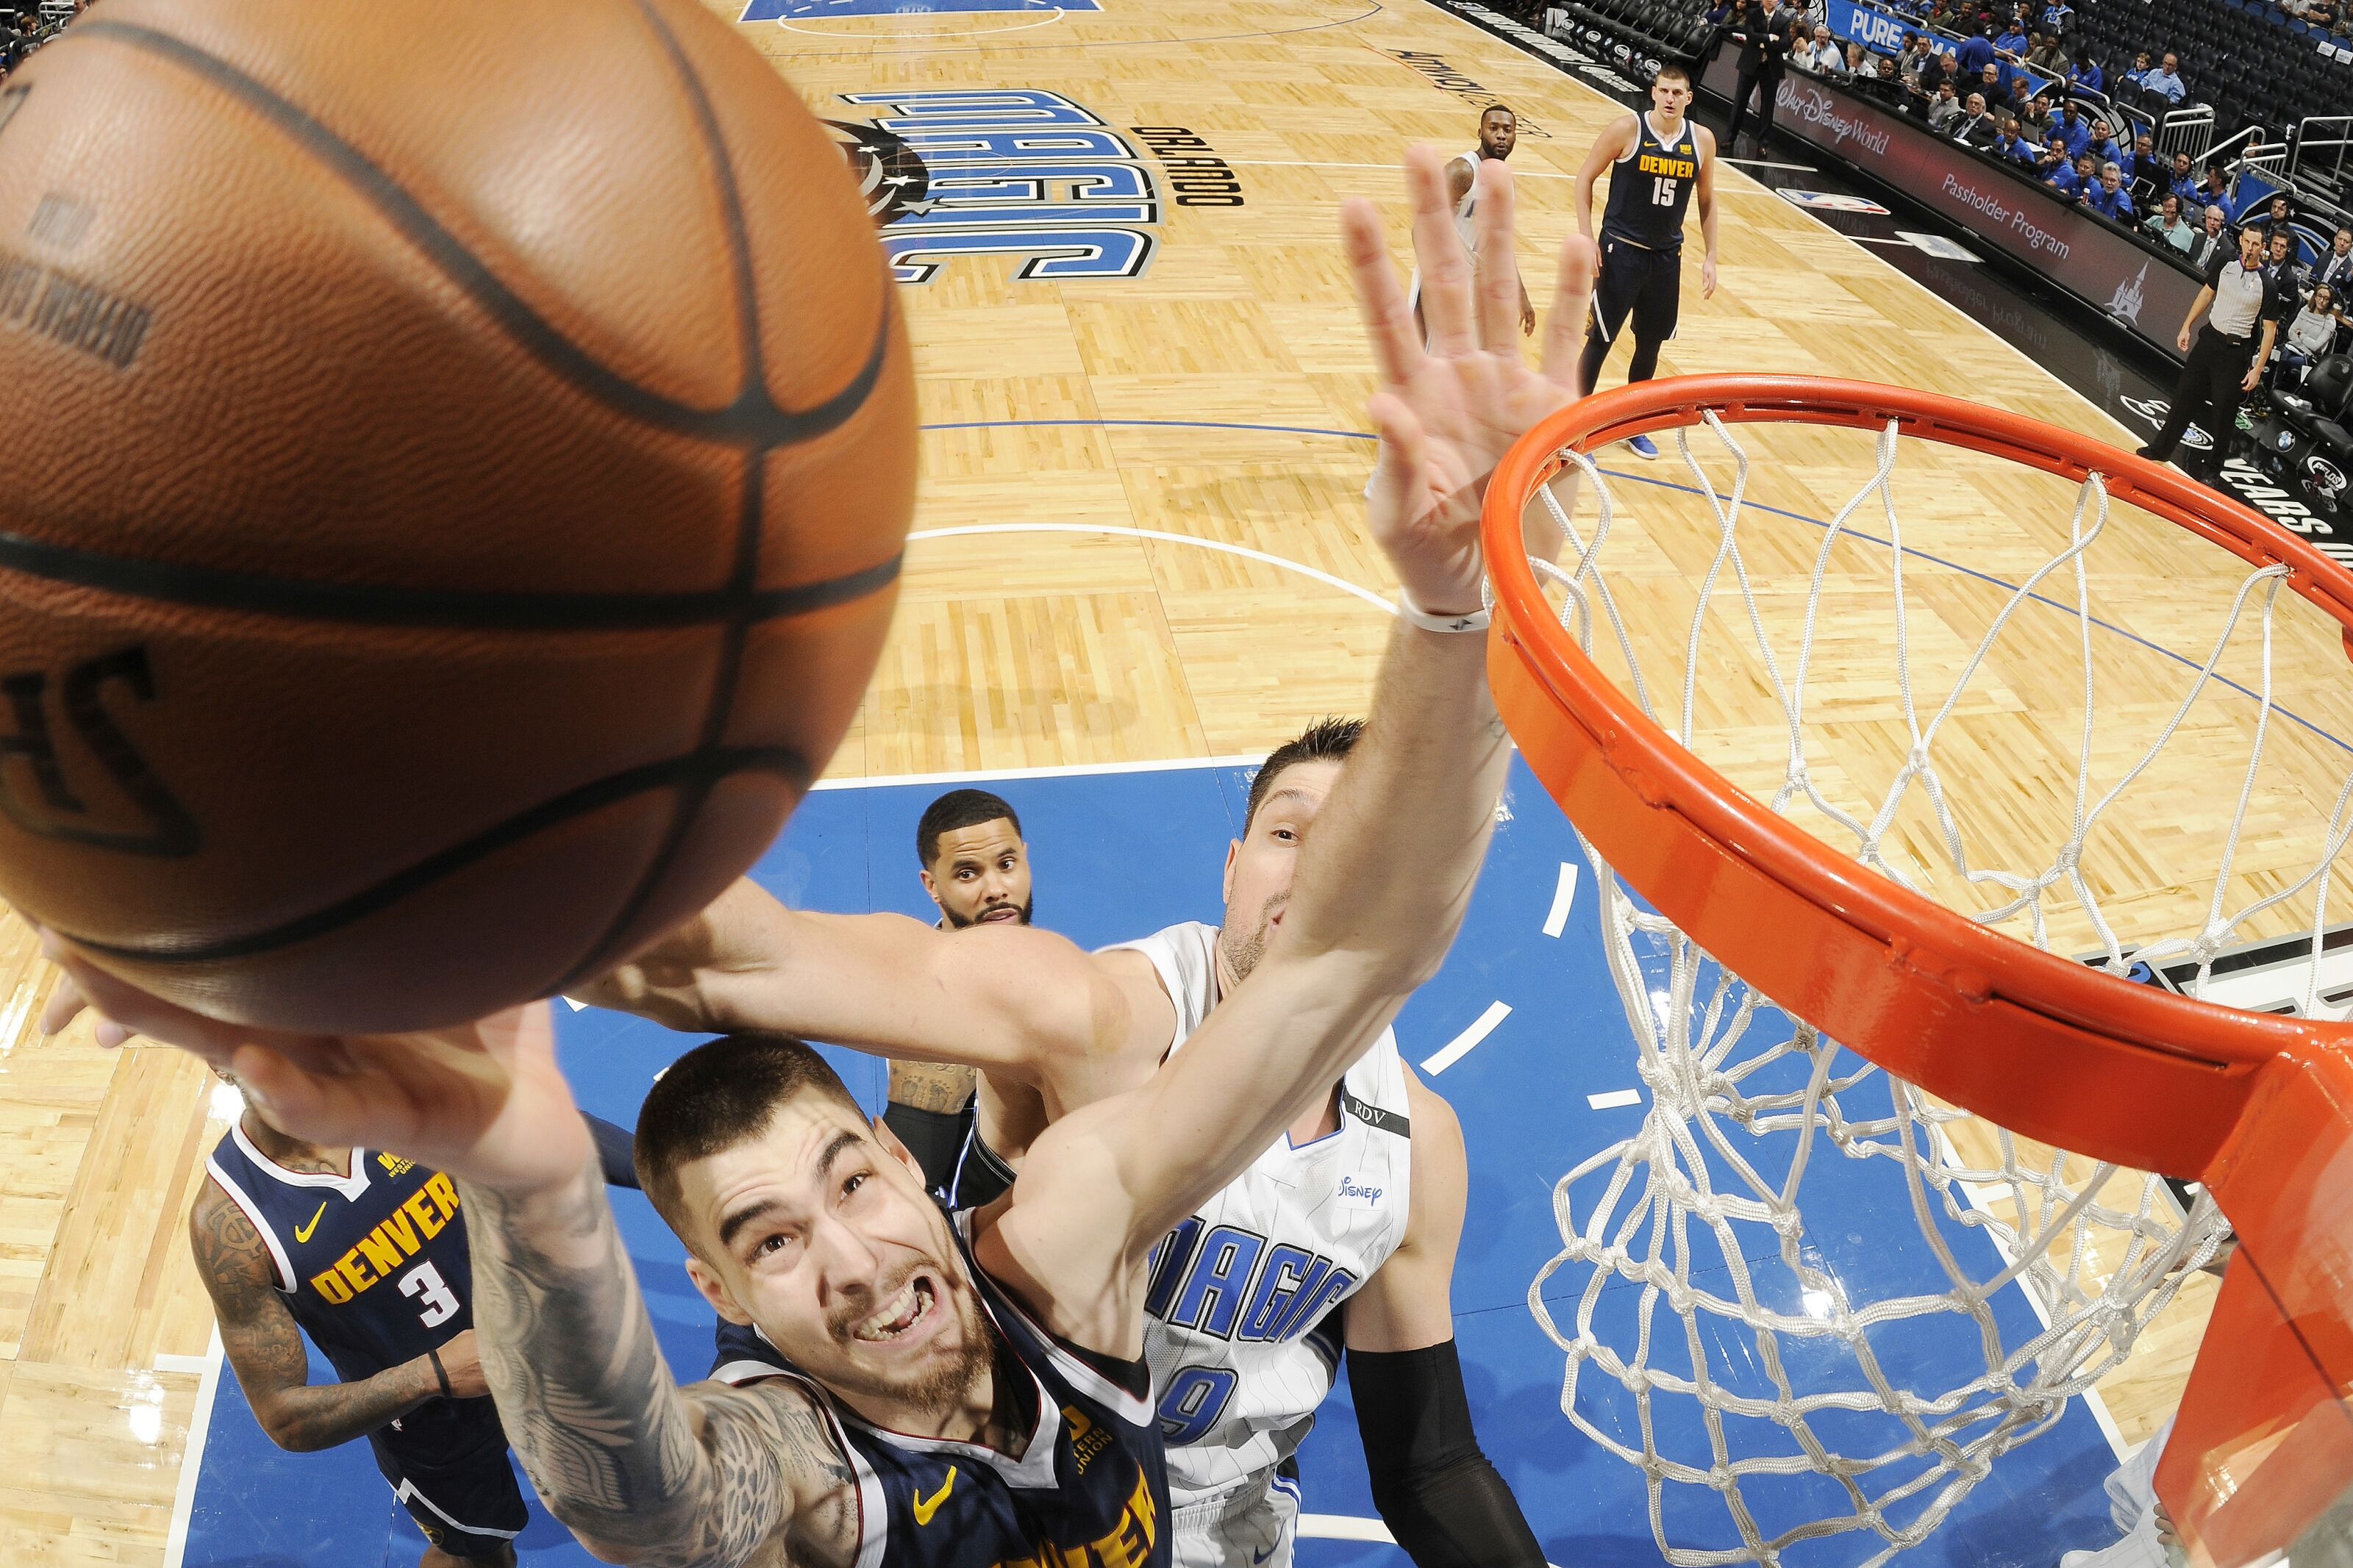 finest selection 222b5 38839 Denver Nuggets Looking to Recuperate Against the Atlanta Hawks